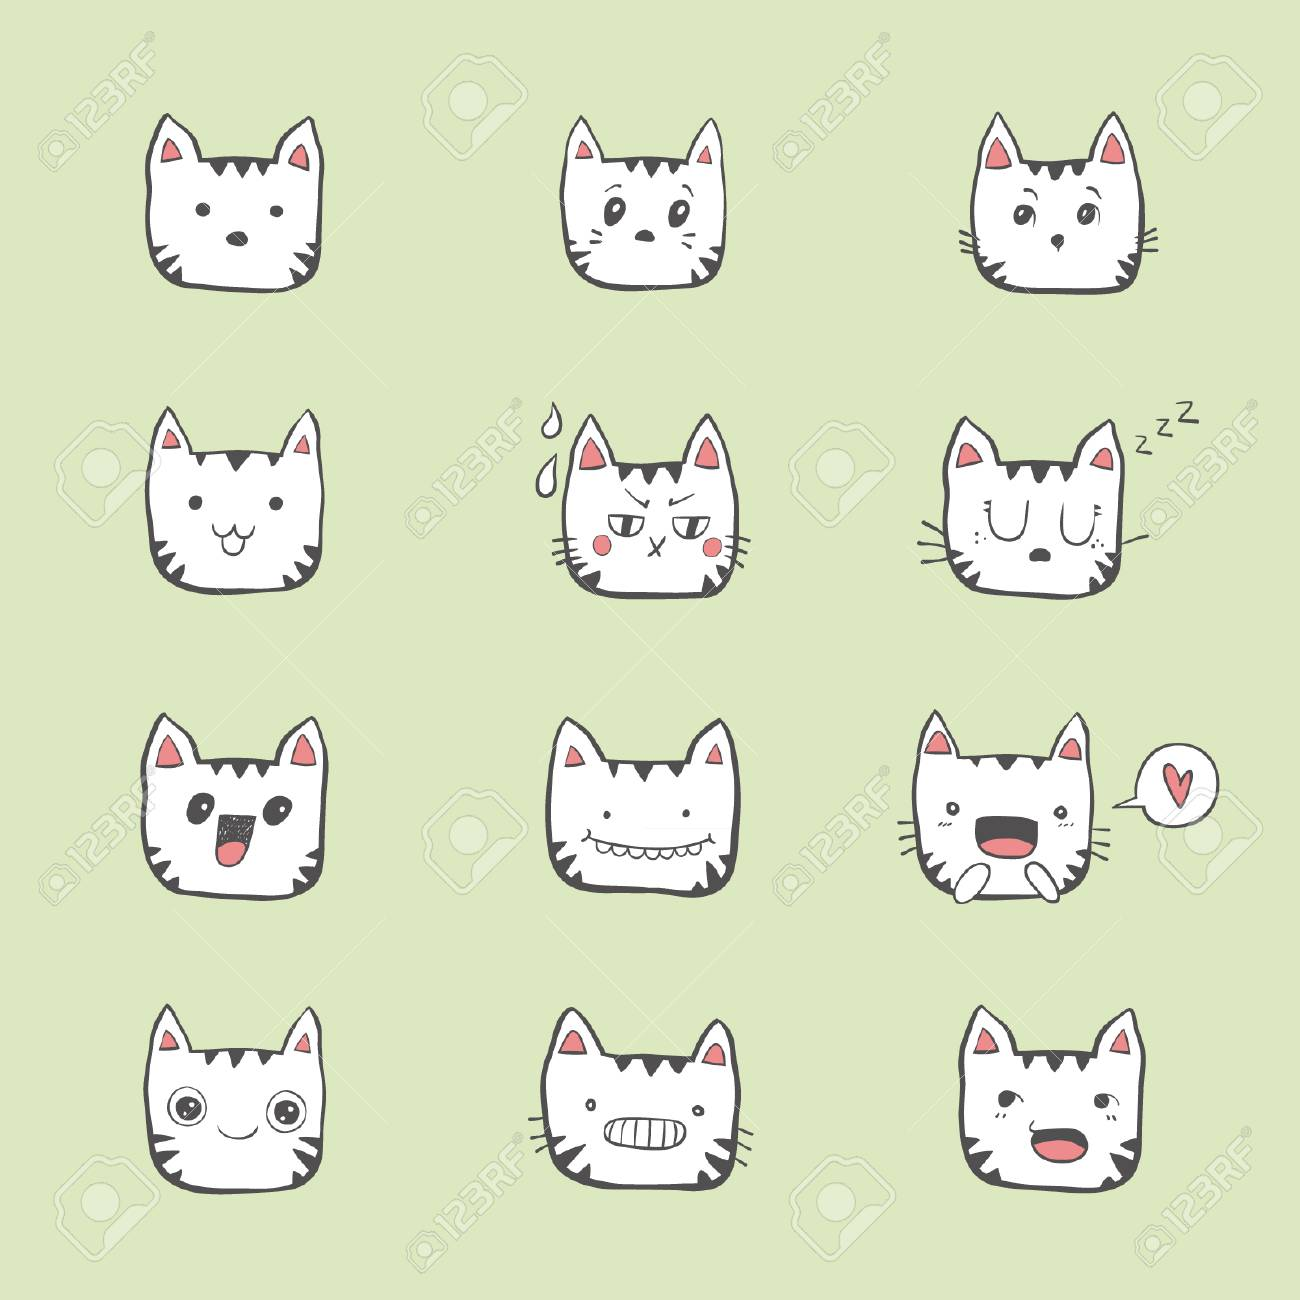 Hand Draw Cat Cute Emotional Faces On Blue Background Royalty Free Cliparts Vectors And Stock Illustration Image 94022217